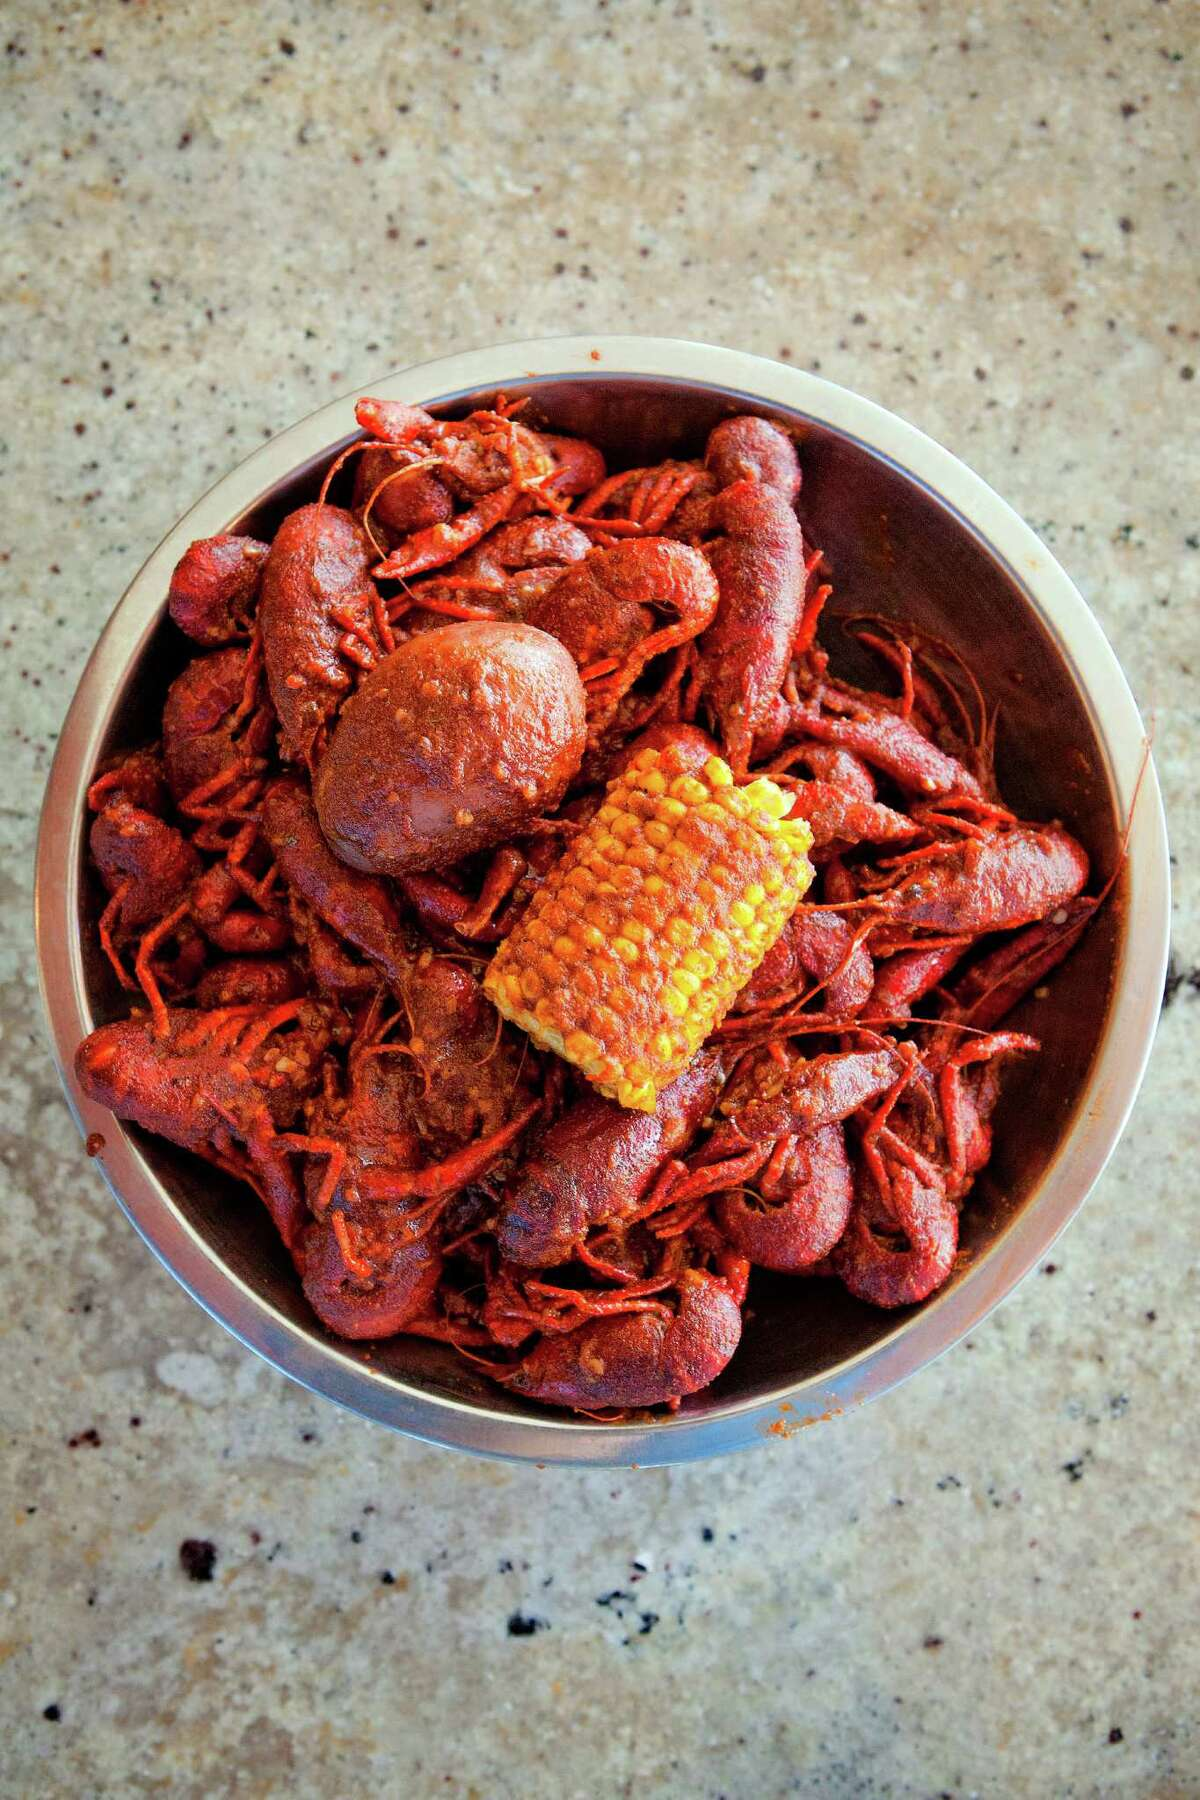 A bowl of fresh crawfish is seen, Monday, May 16, 2011, at Crawfish and Noodles restaurant in Bellaire, Texas. (Todd Spoth for The Chronicle)